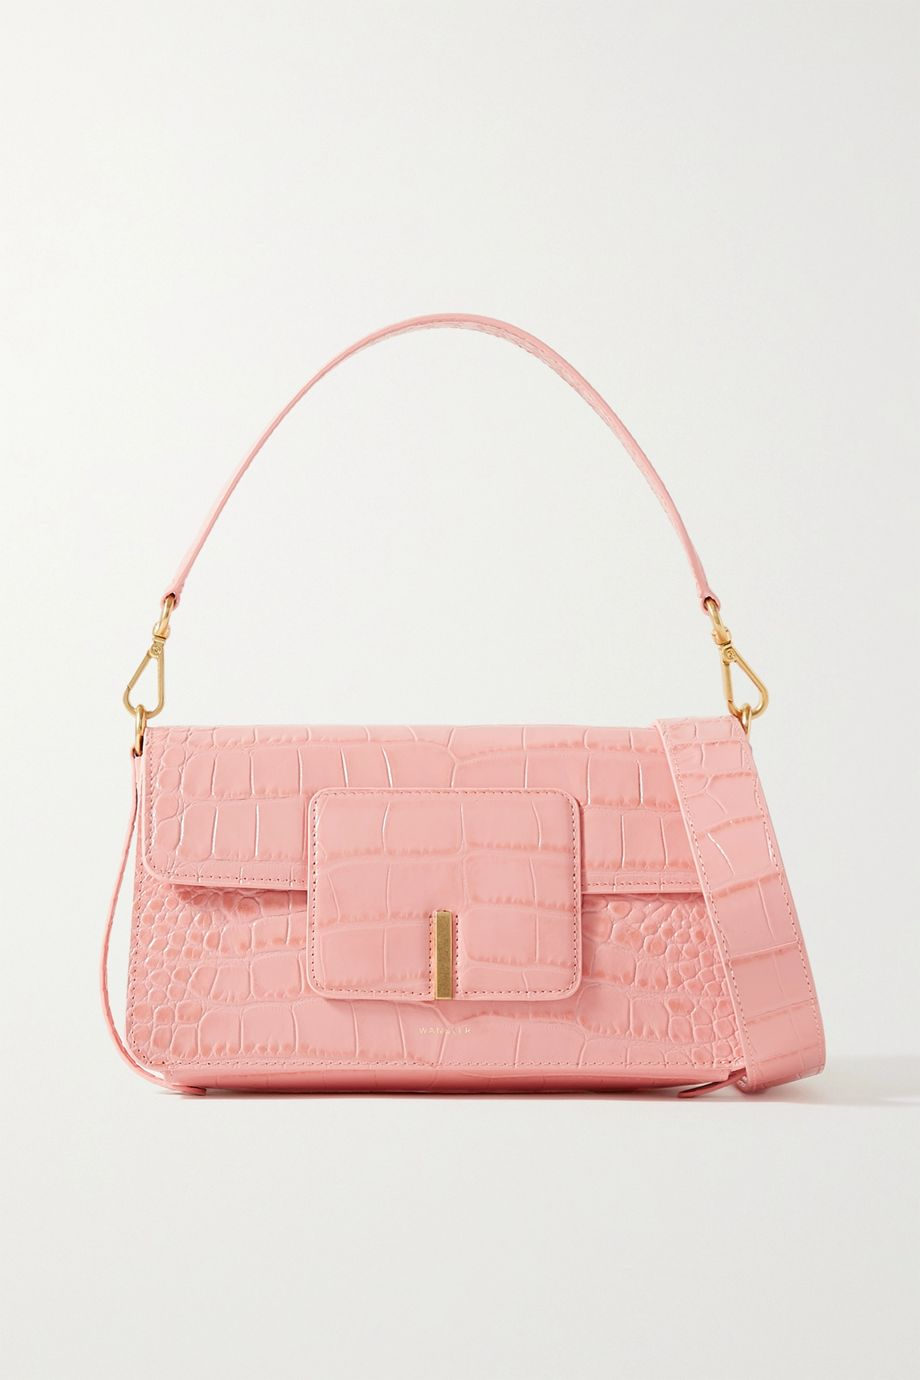 Wandler Georgia croc-effect leather shoulder bag